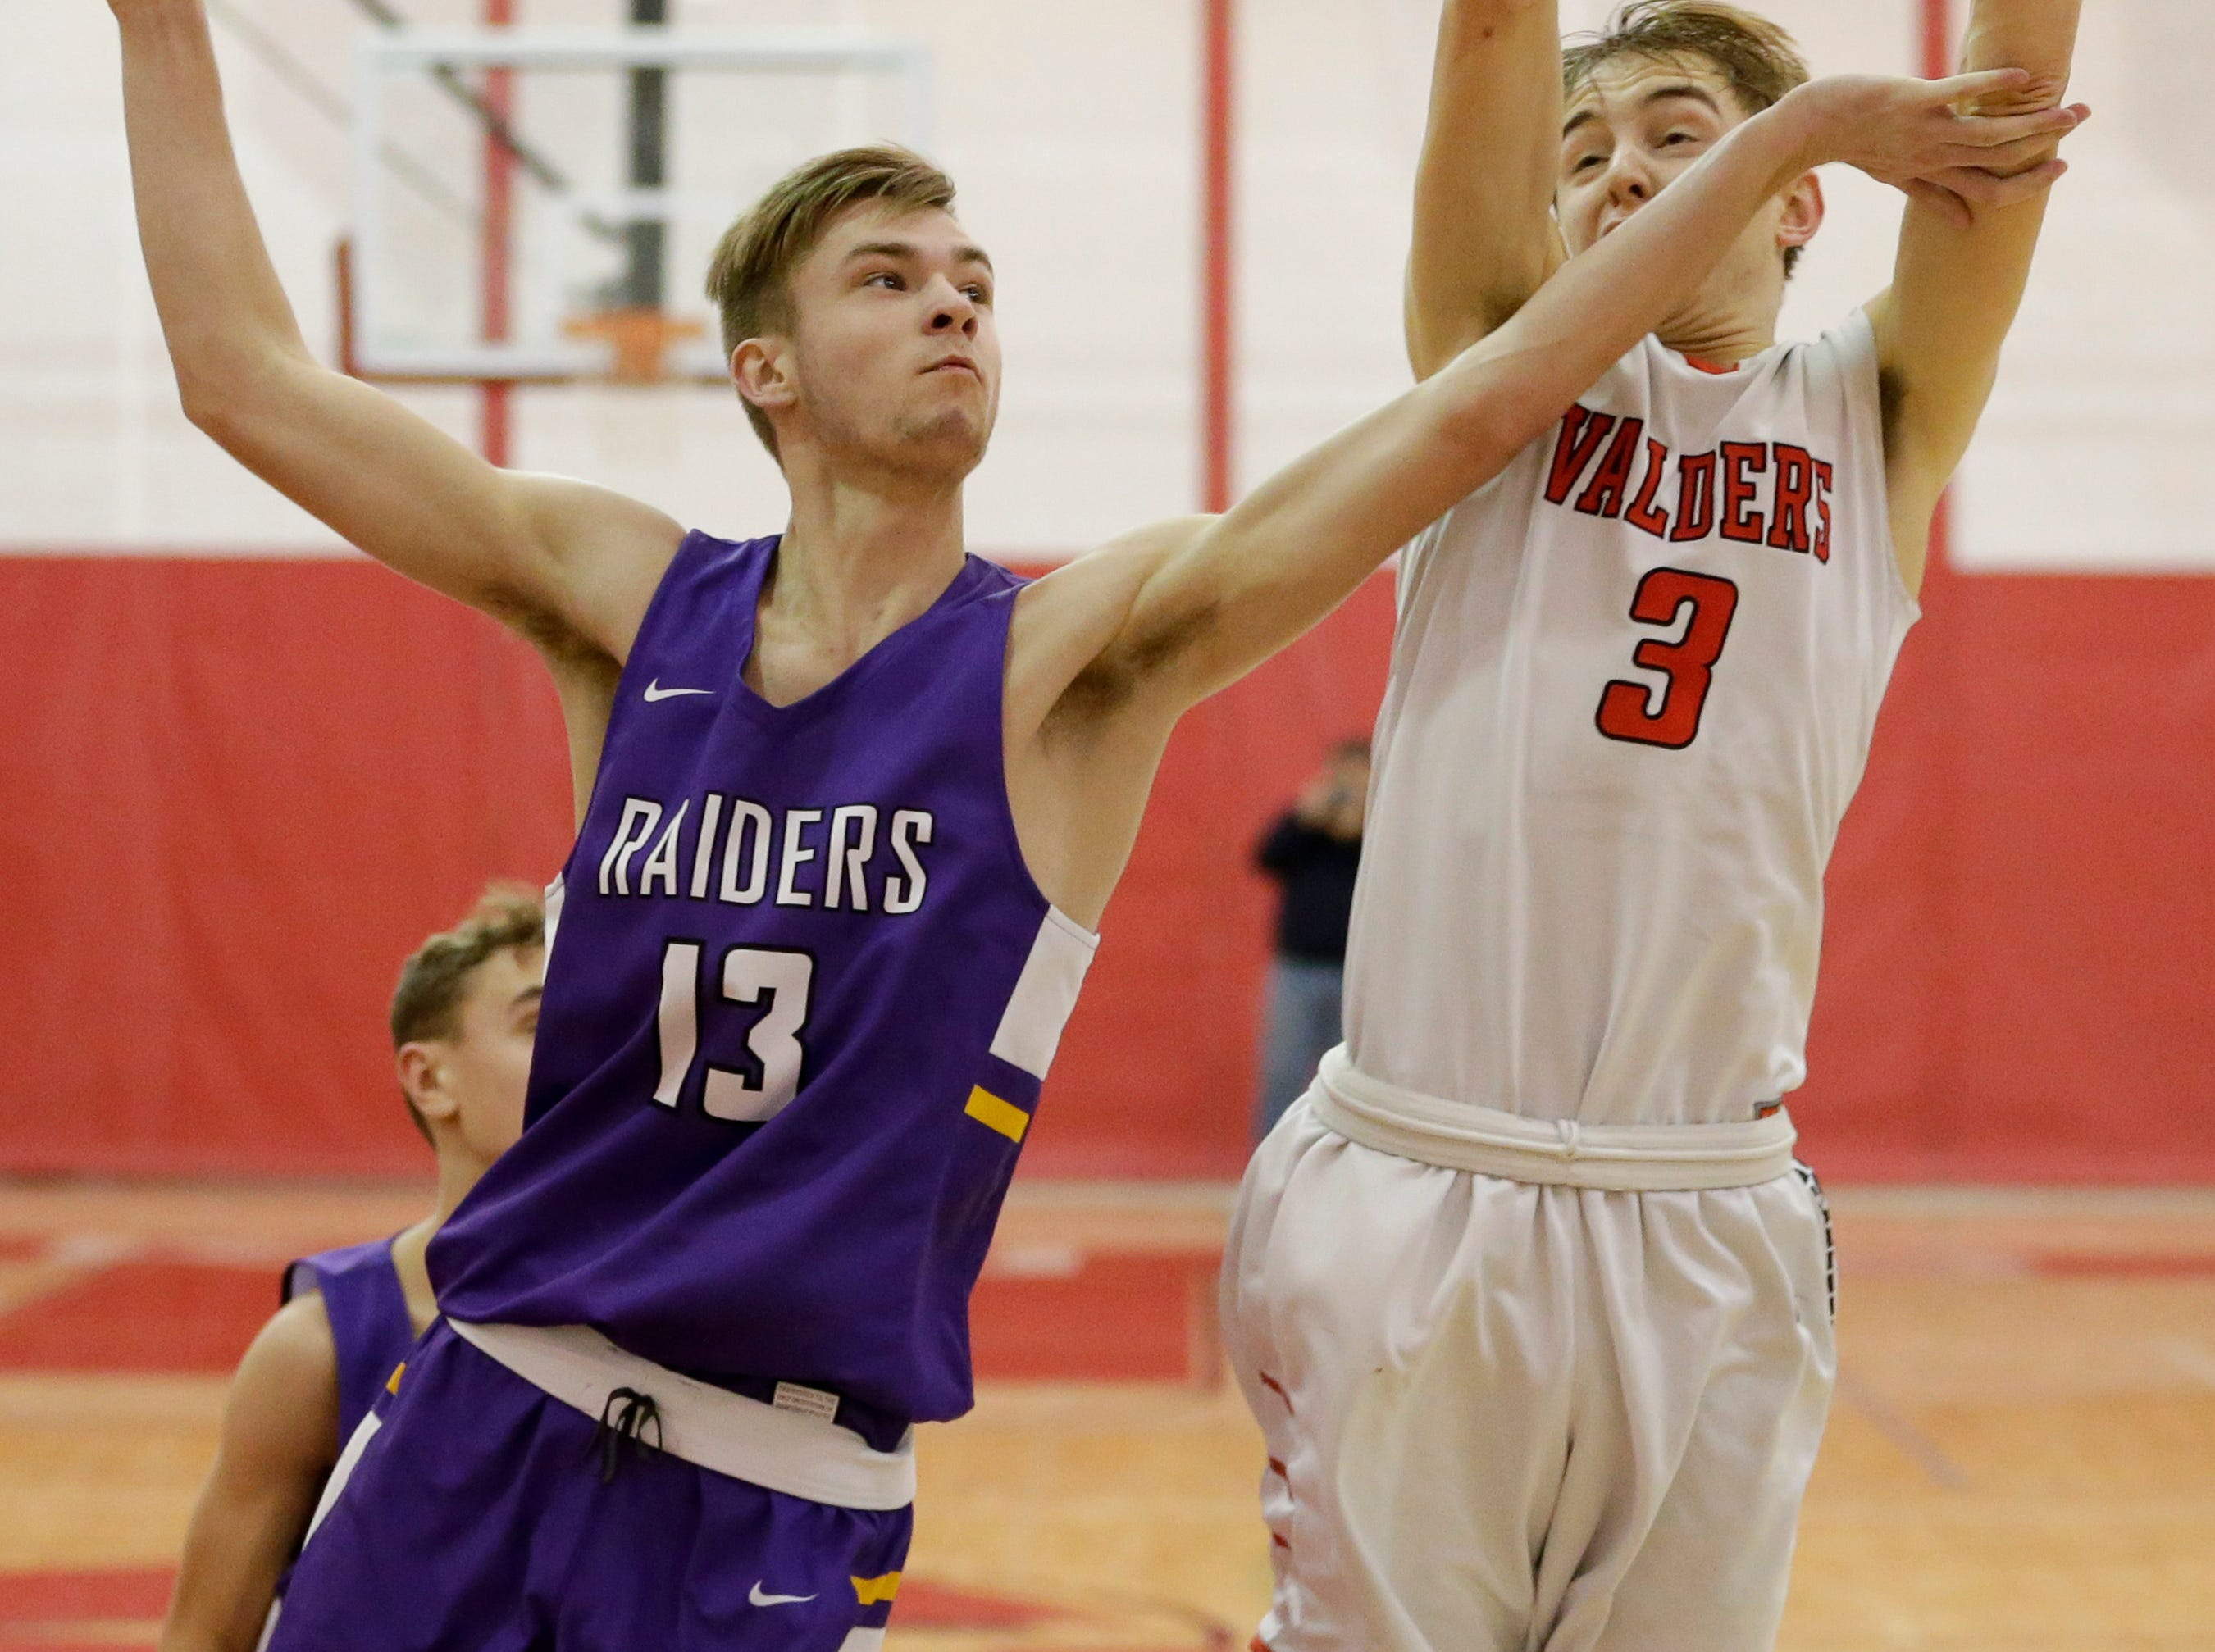 Valders' Matthew Meyers (3) rebounds against Two Rivers' David Tice (13) at Valders High School Thursday, January 24, 2019, in Valders, Wis. Joshua Clark/USA TODAY NETWORK-Wisconsin